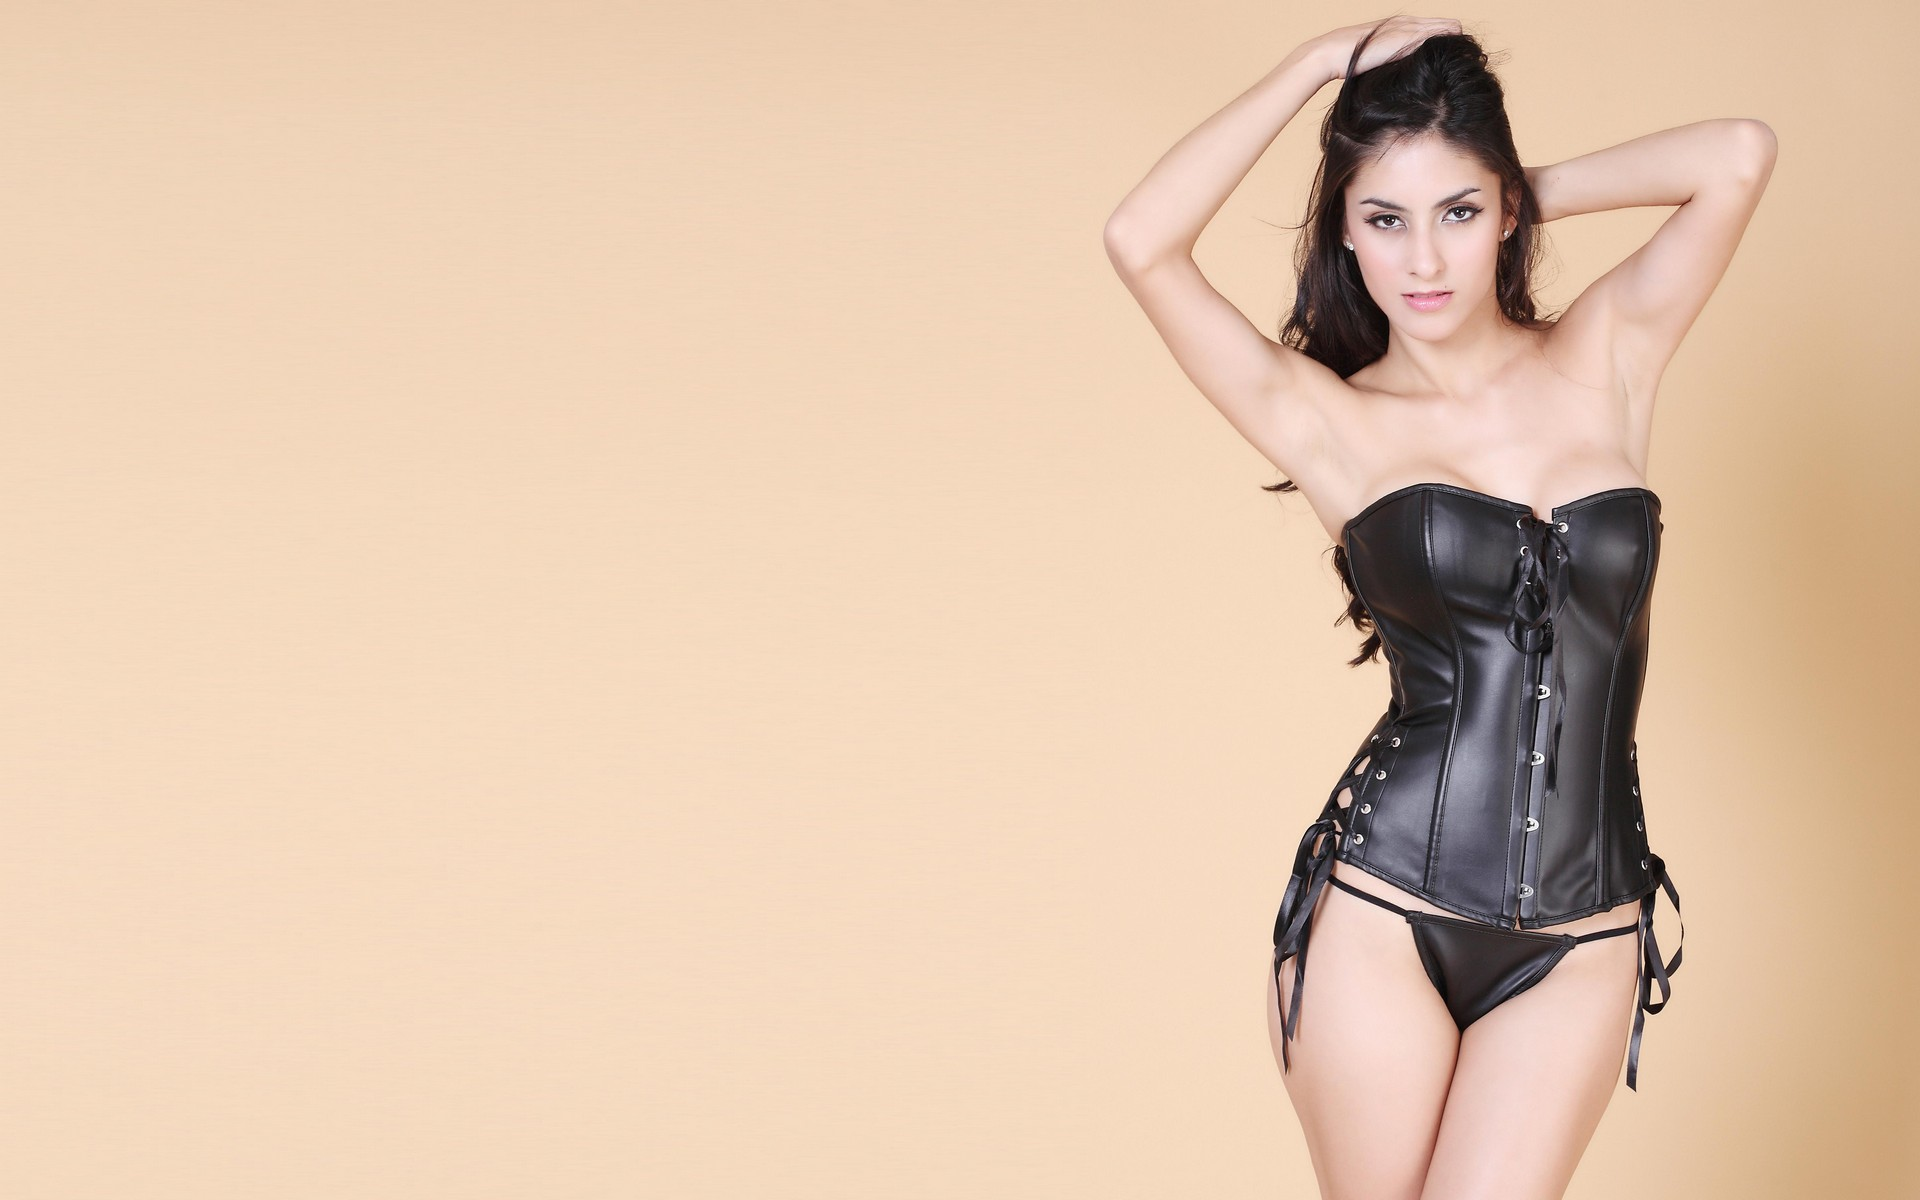 Pin on corset lingerie